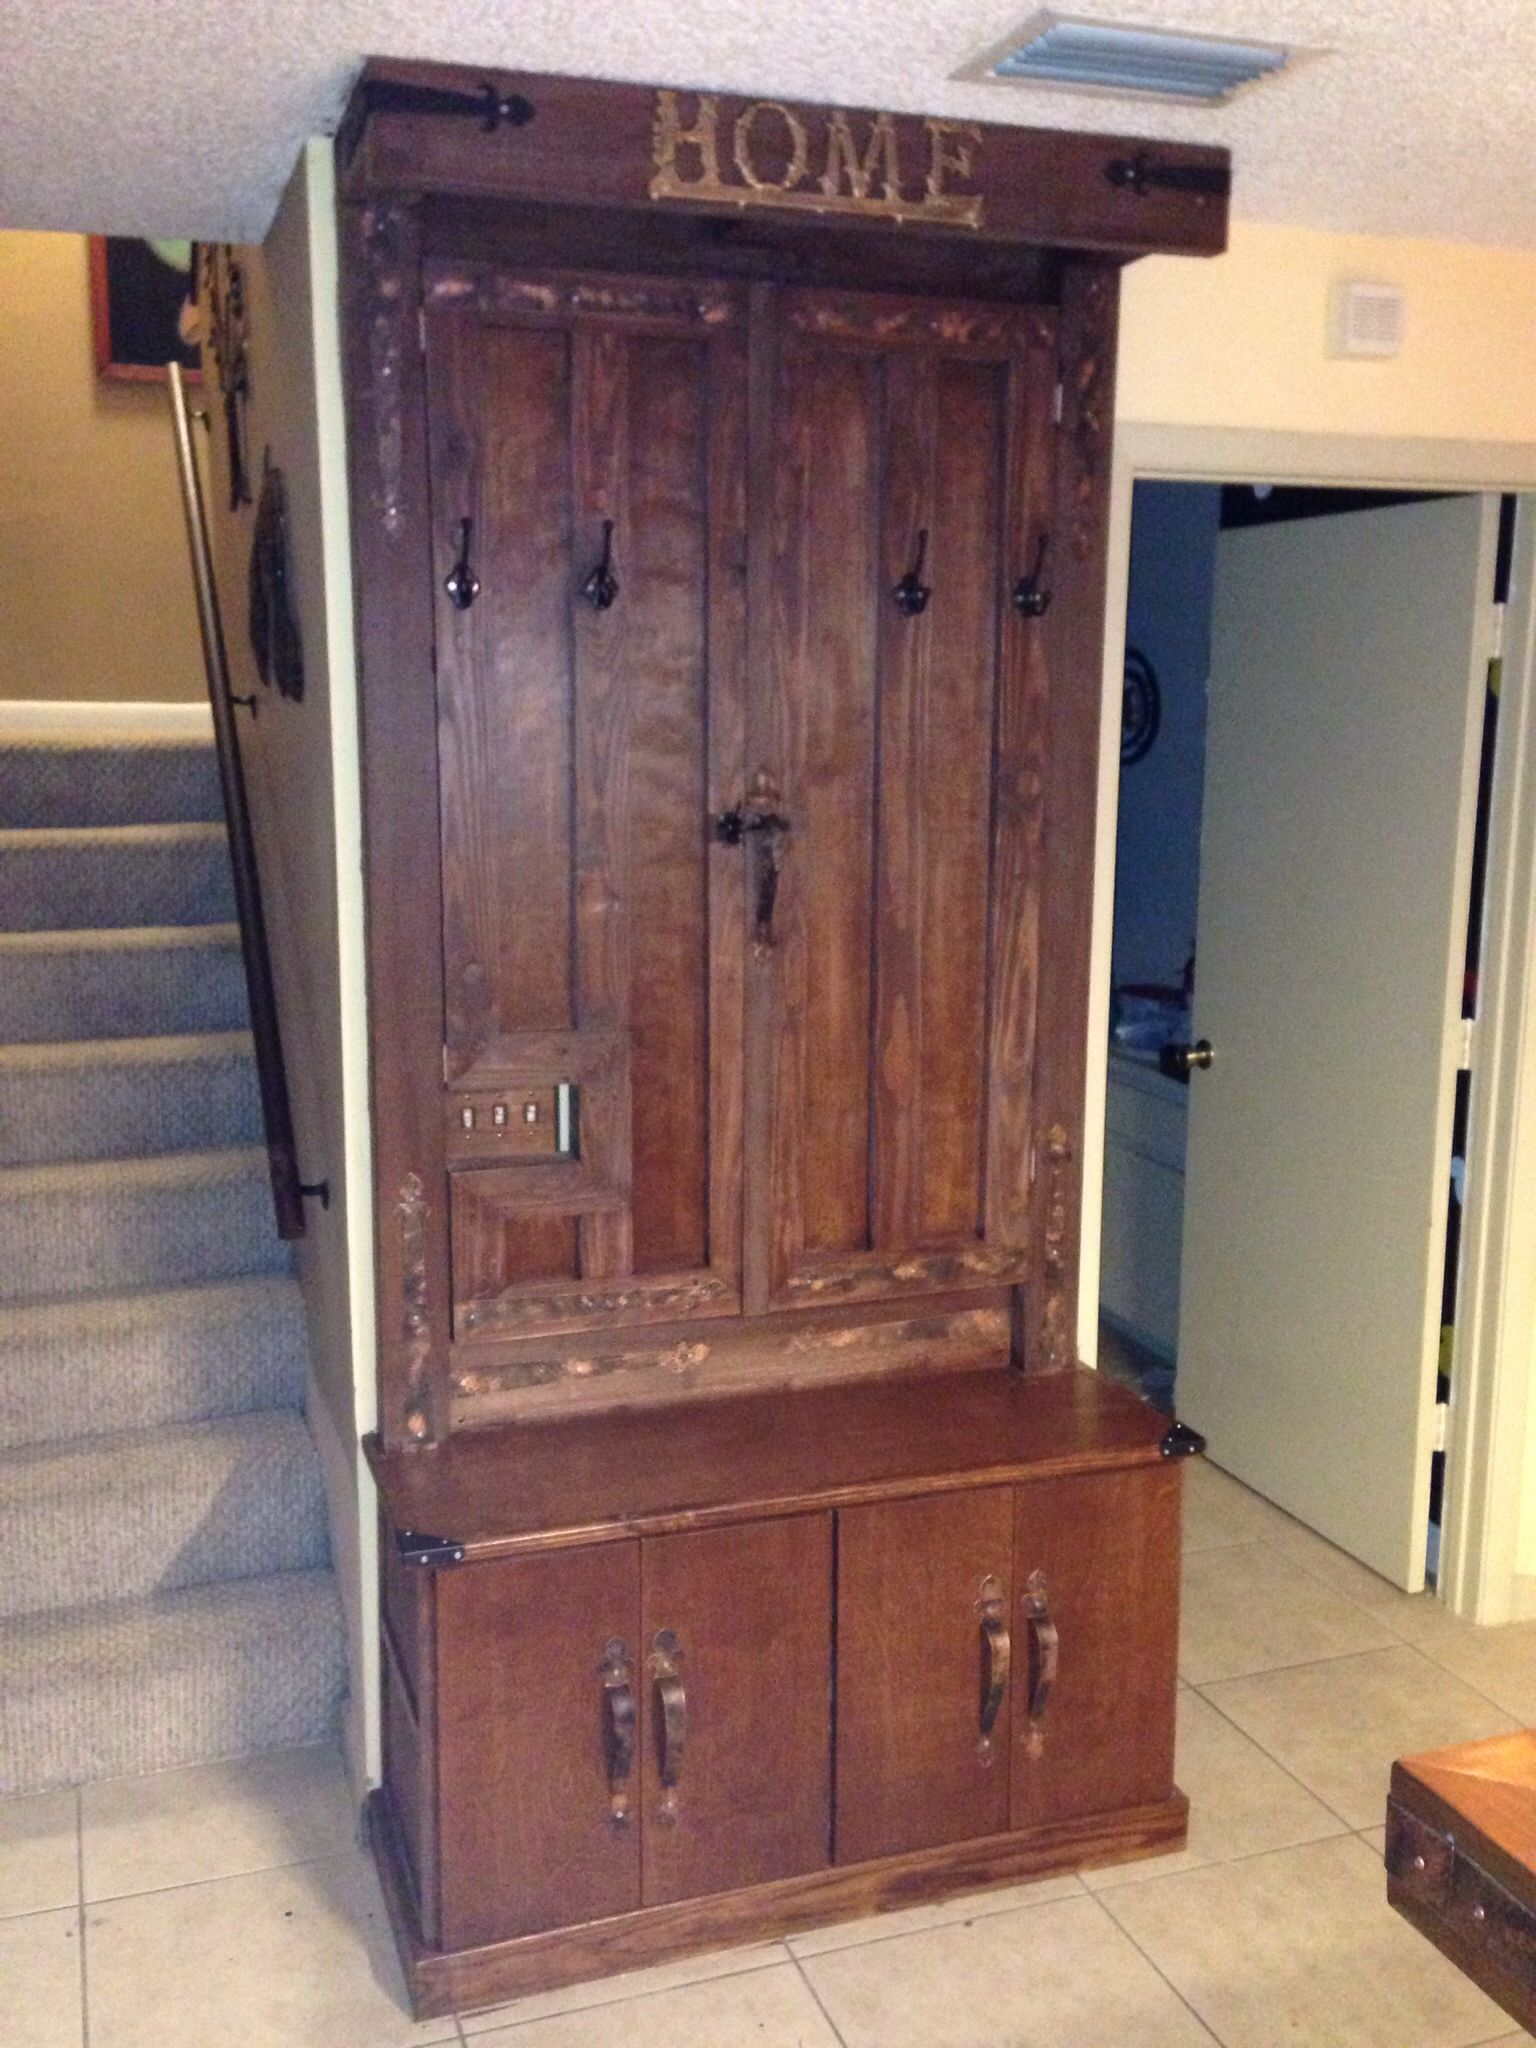 hiding electric fuse box a hall tree cabinet wood work hiding electric fuse box a hall tree cabinet